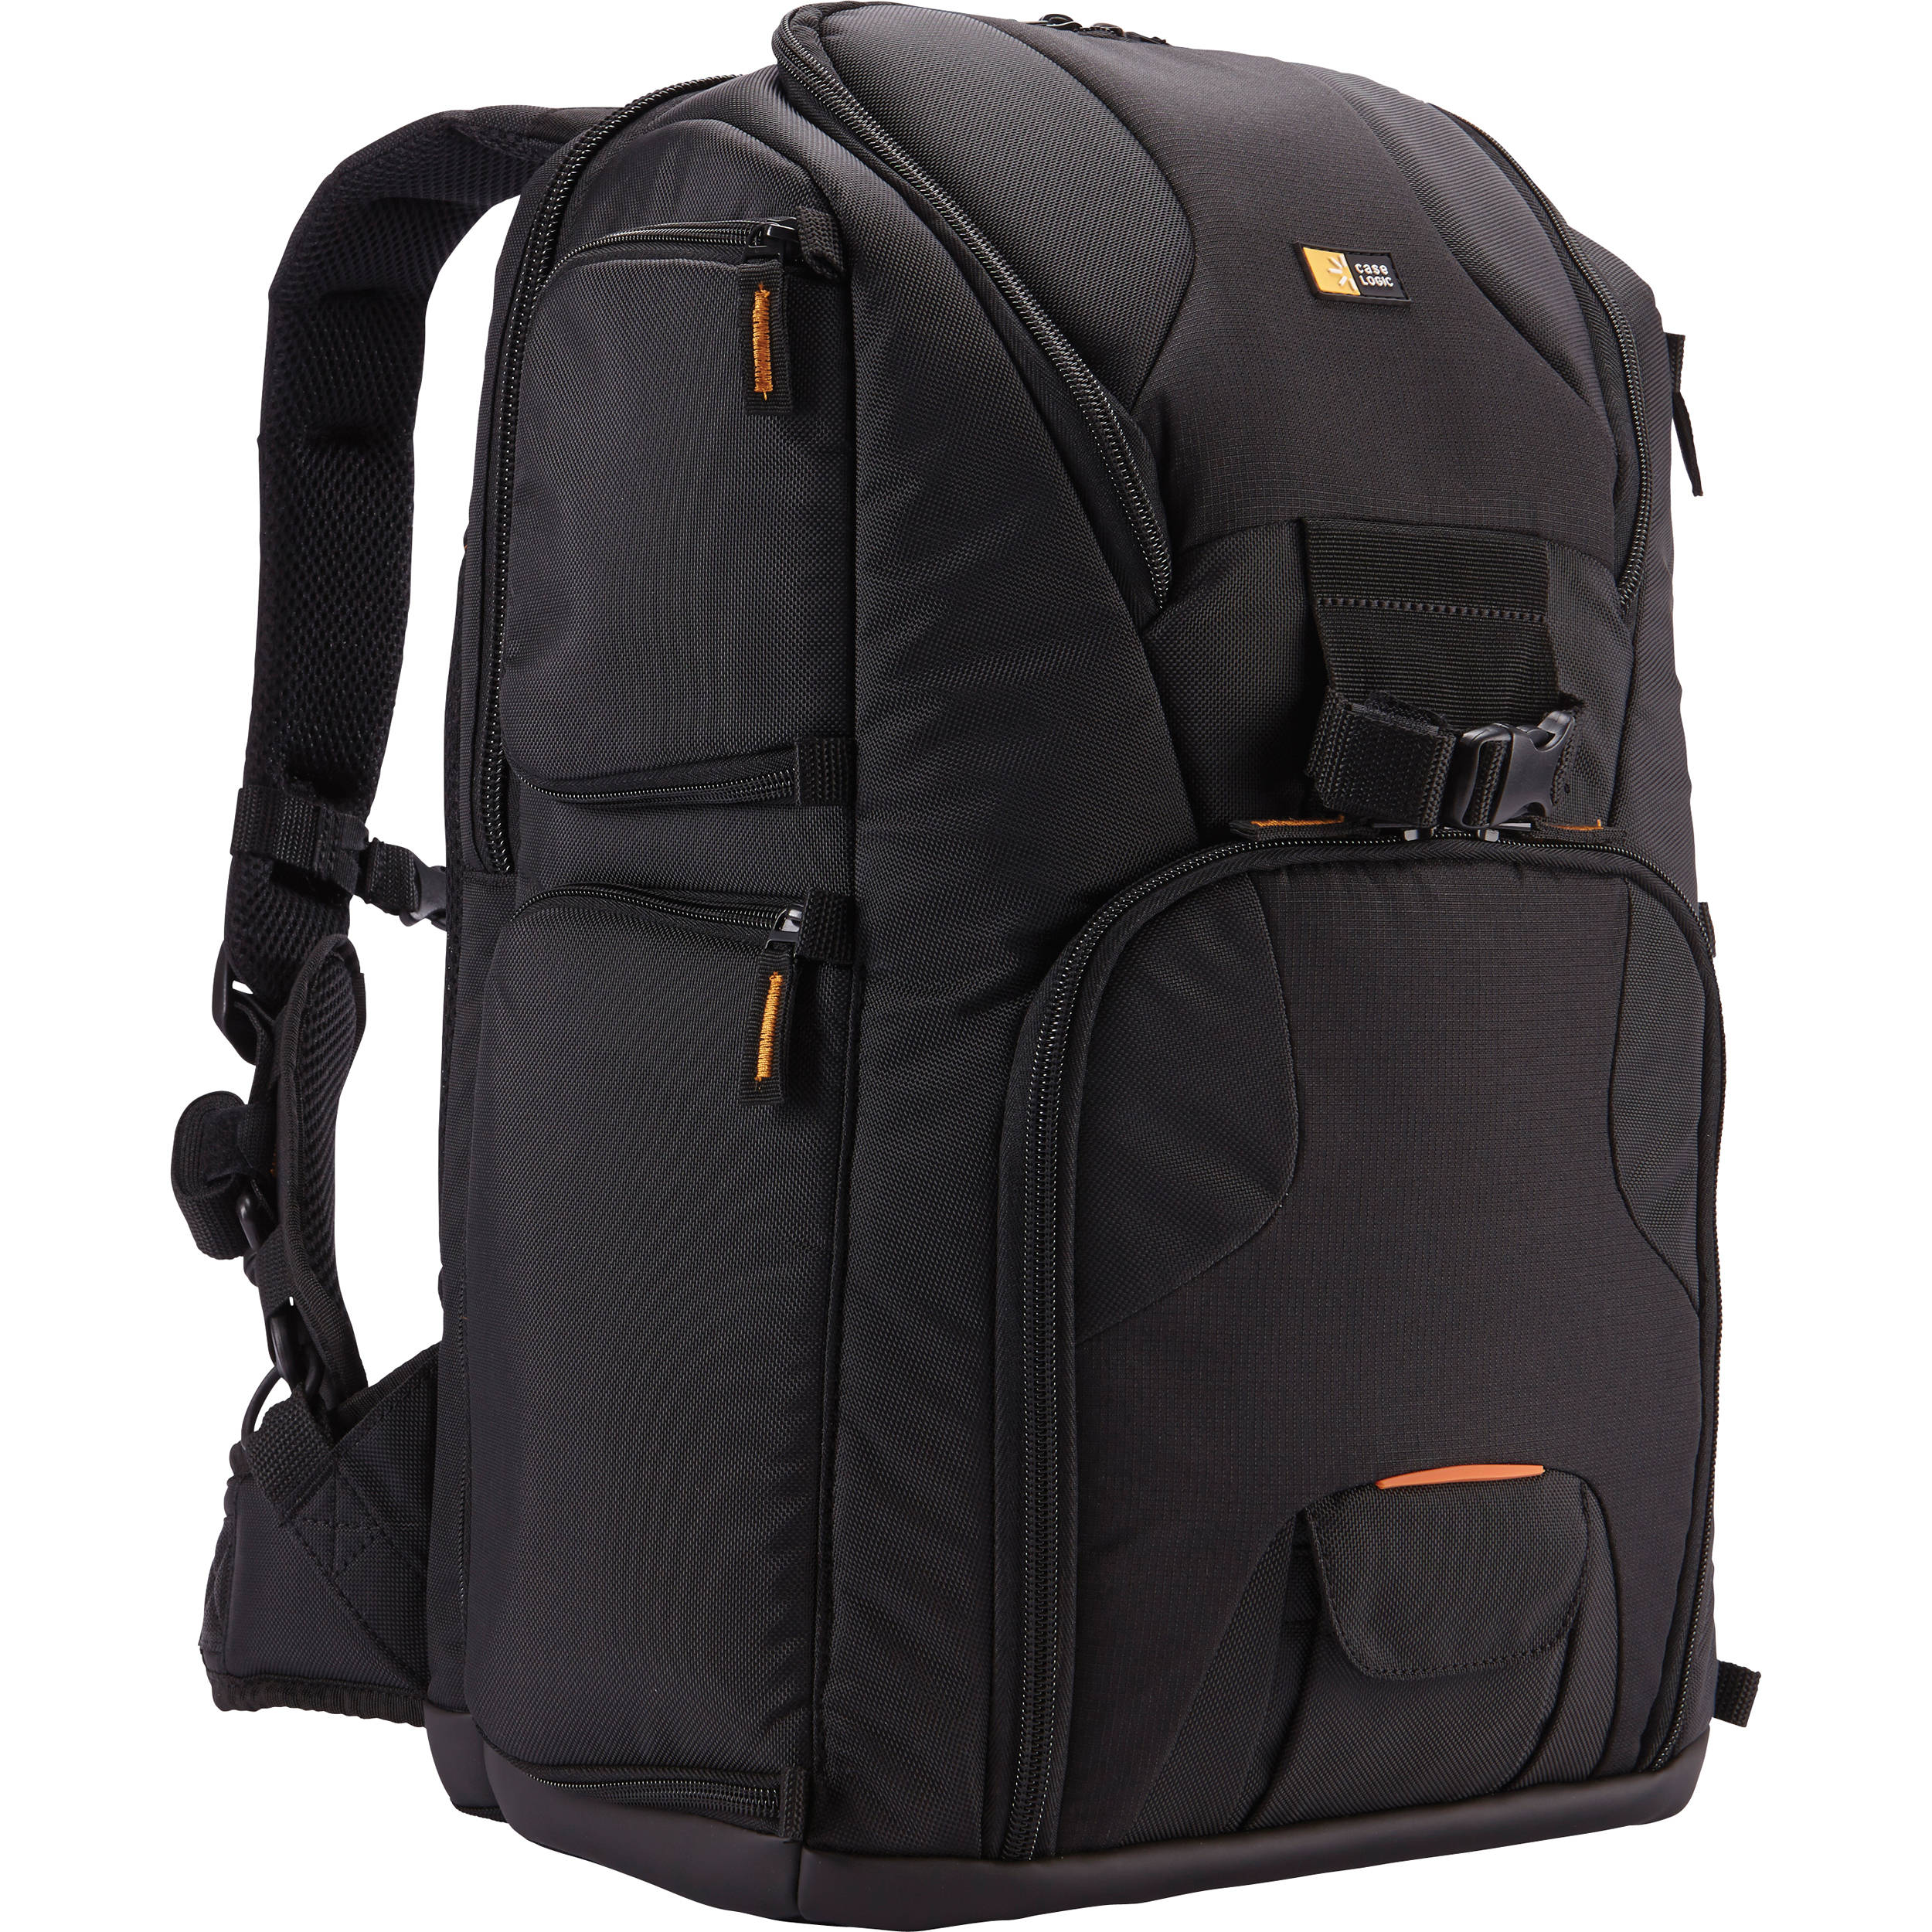 Case Logic Kilowatt Camera & Laptop Sling Backpack KSB-102